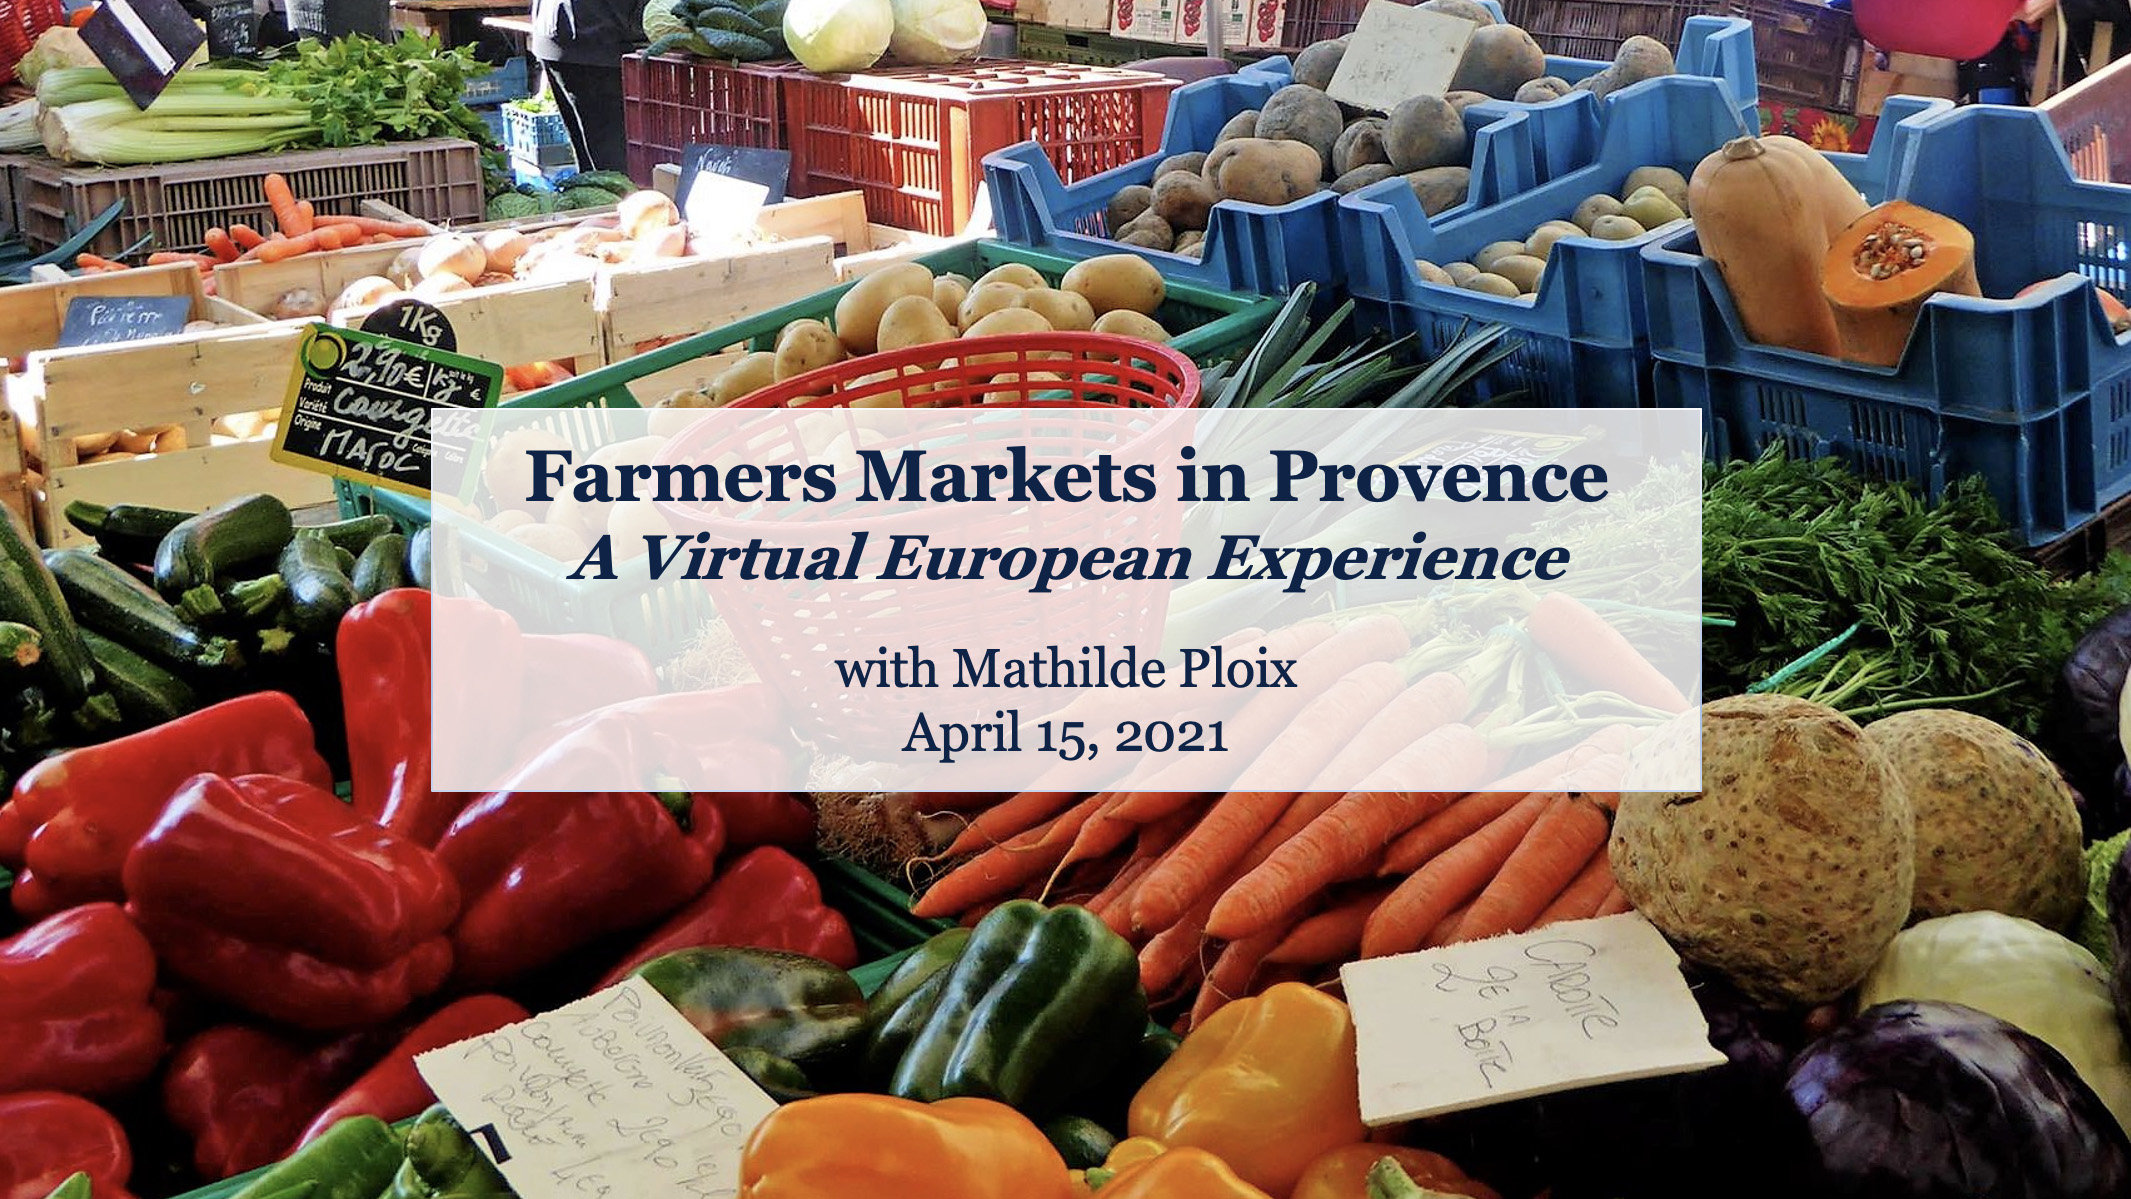 Farmers Markets in Provence